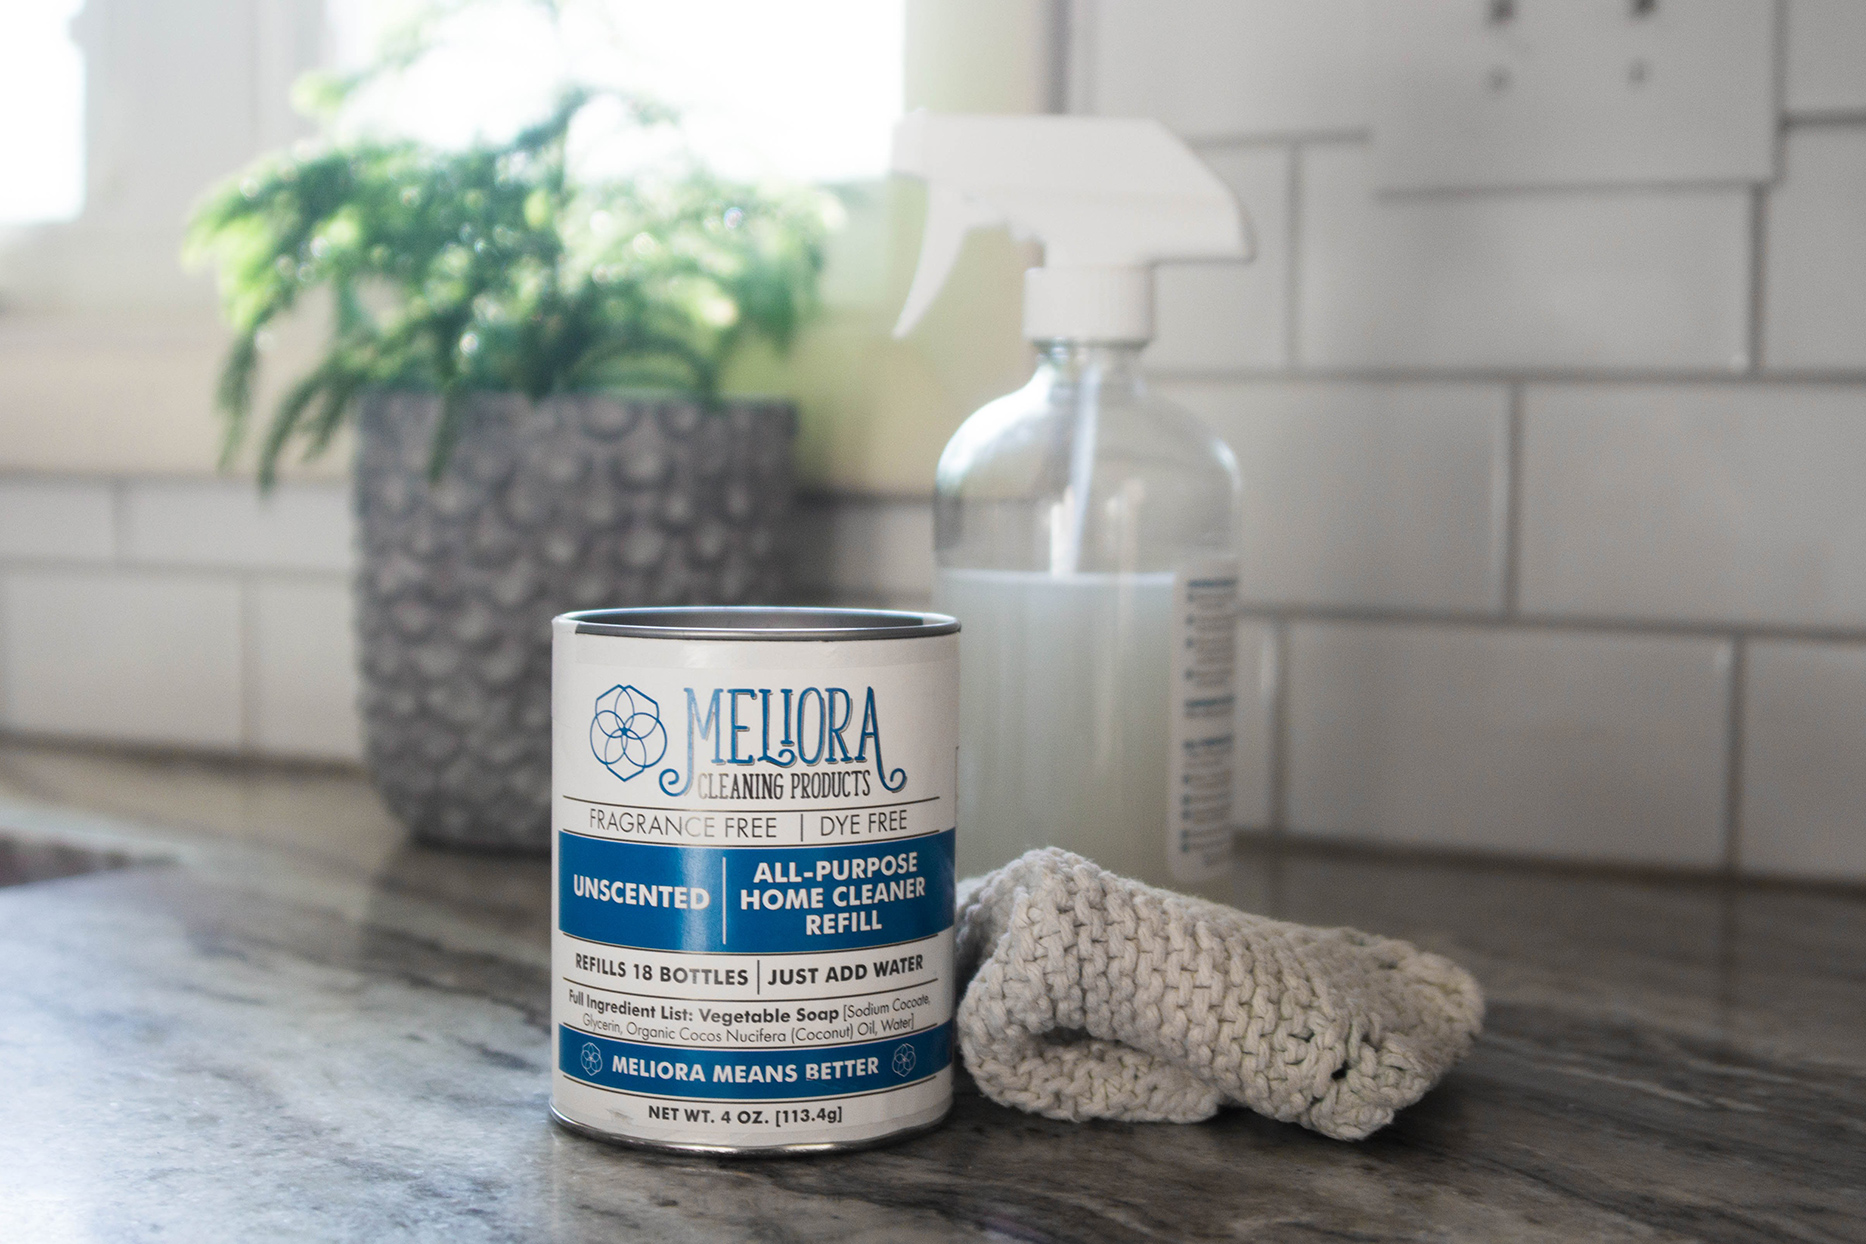 Meliora All-Purpose Home Cleaner